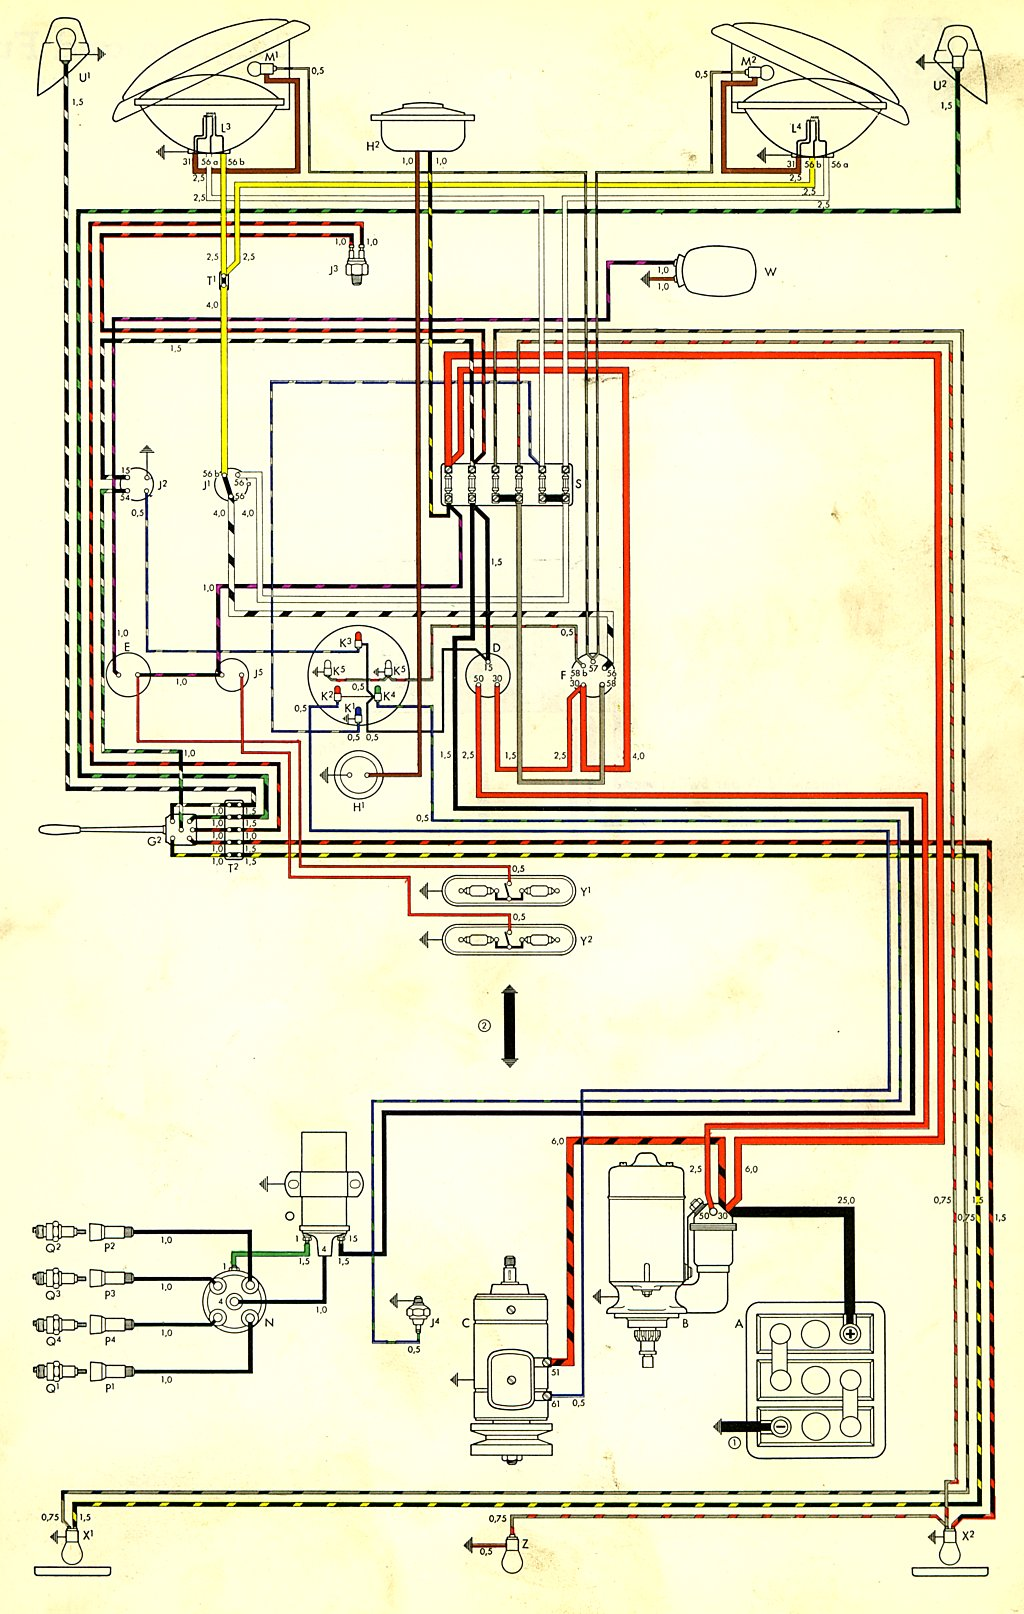 bus_59_USA thesamba com type 2 wiring diagrams Electrical Wiring Diagrams at gsmx.co